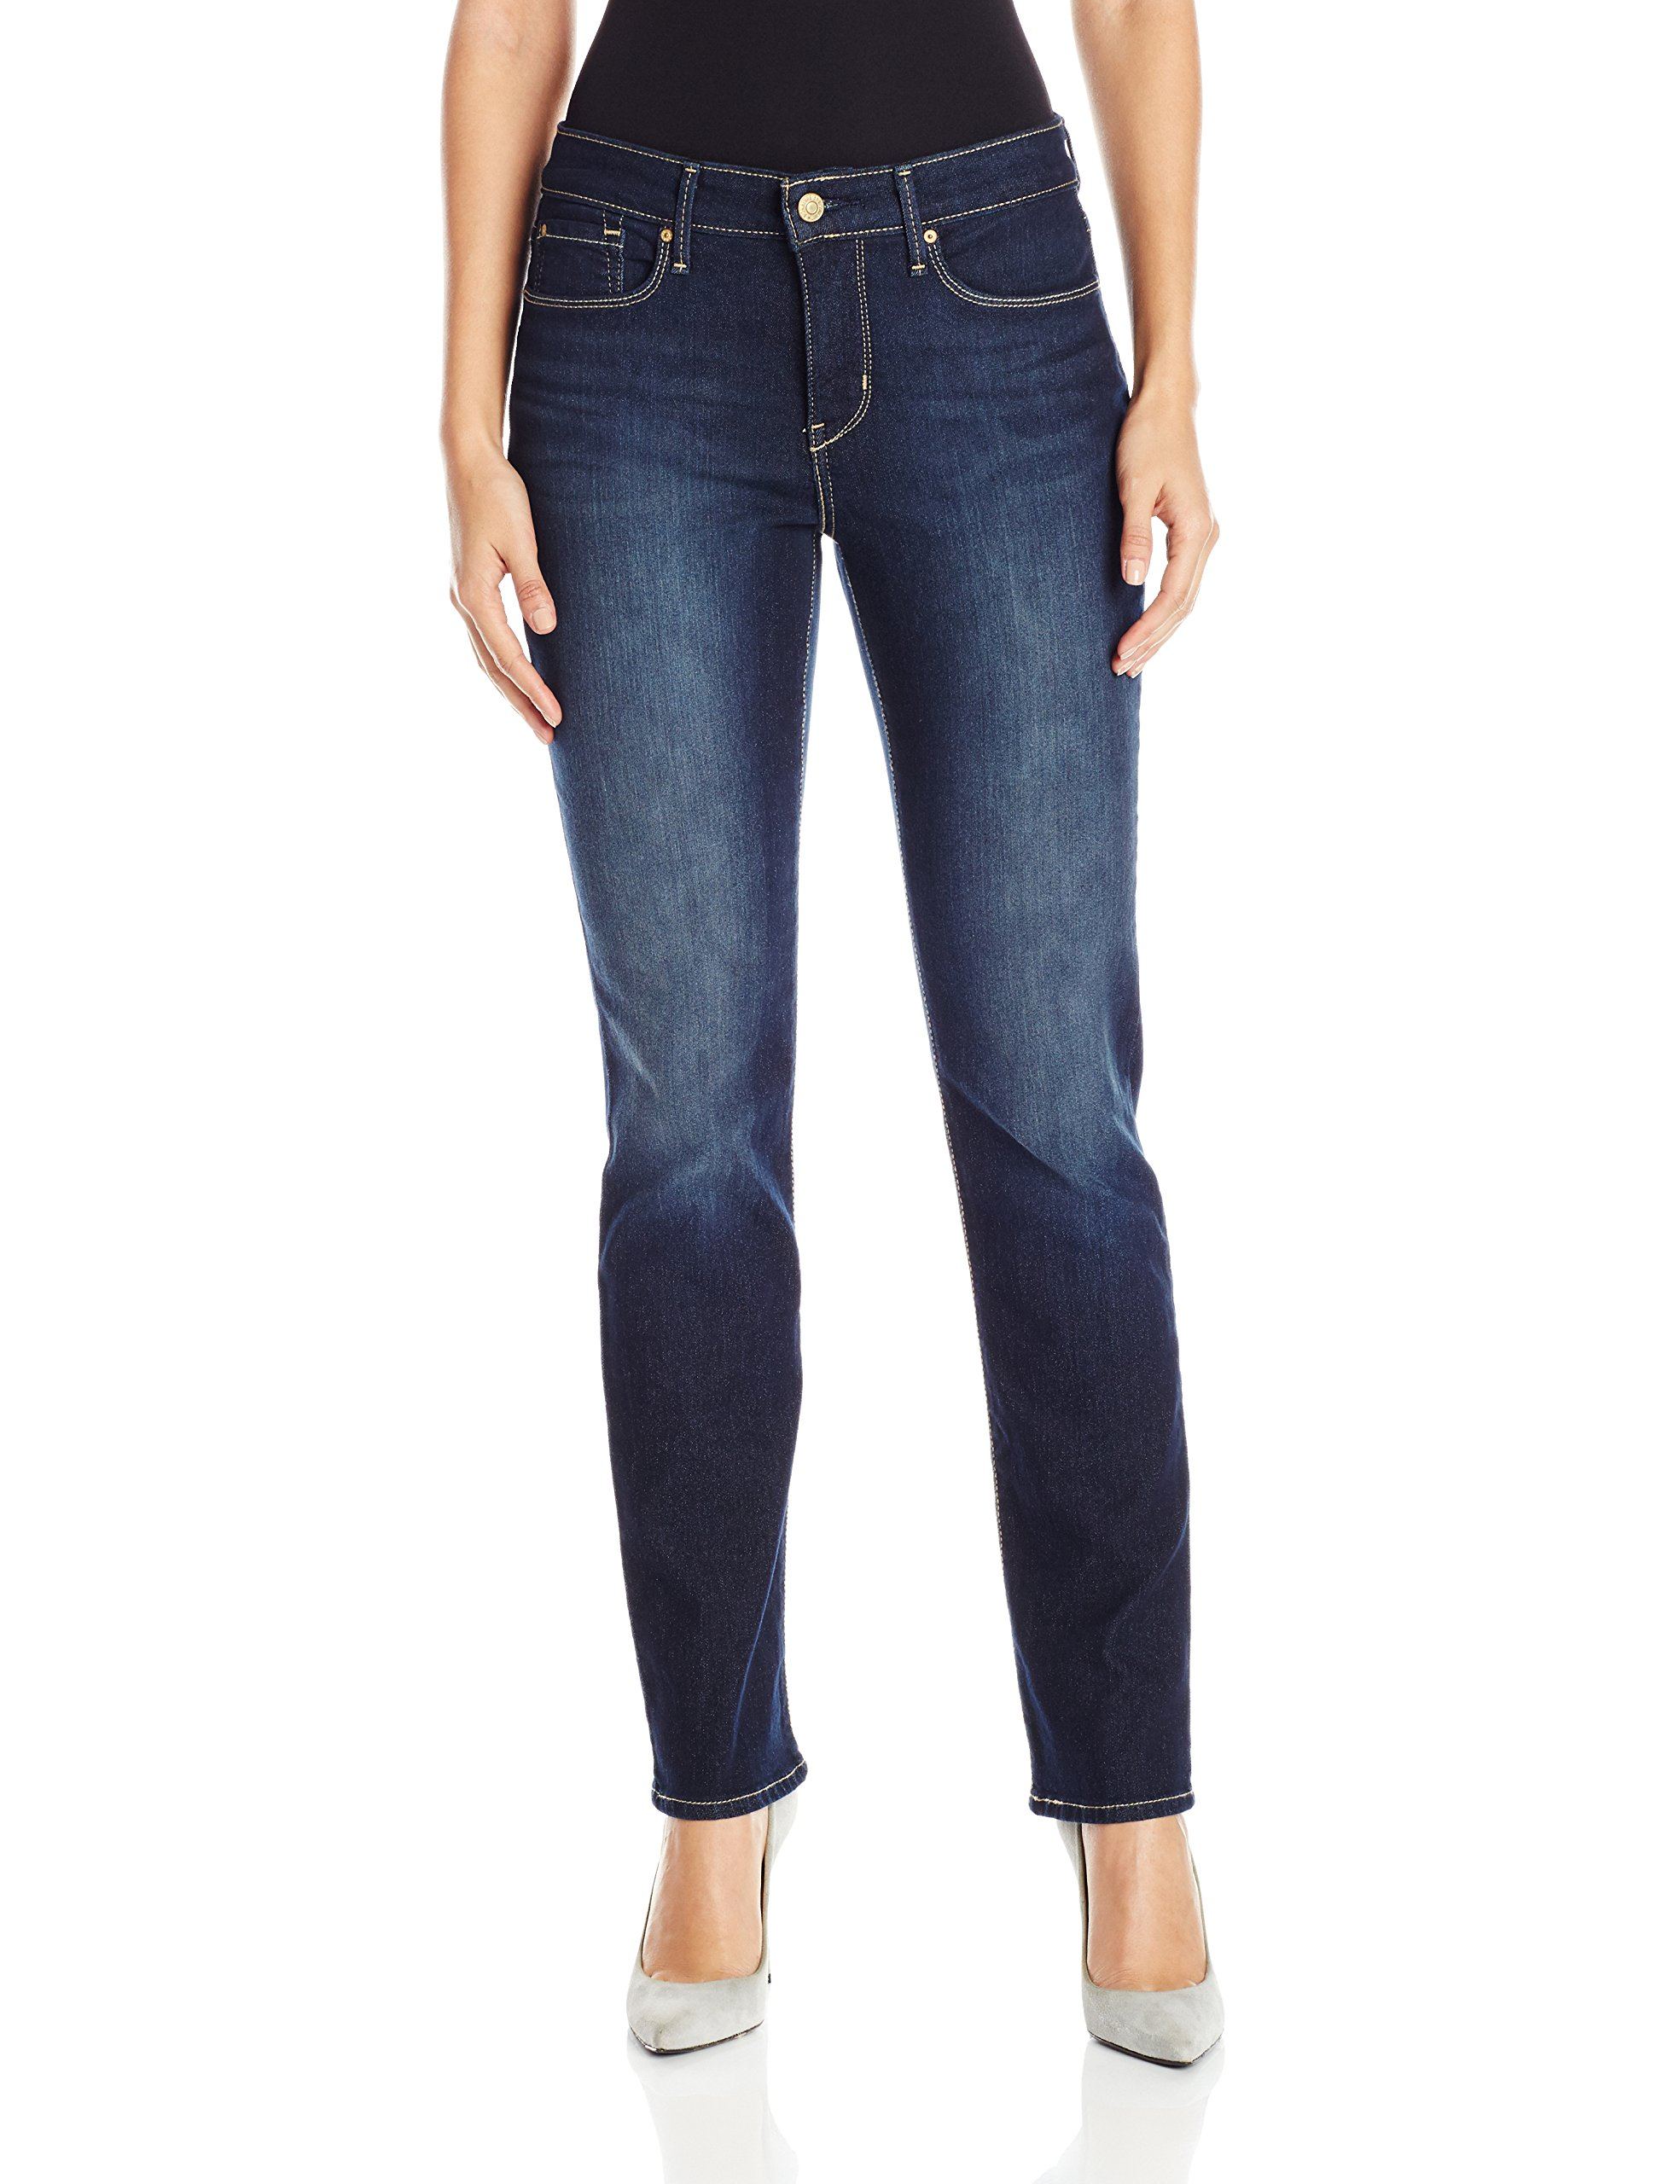 8ea6ddcef5571 Best Rated in Women s Jeans   Helpful Customer Reviews - Amazon.com